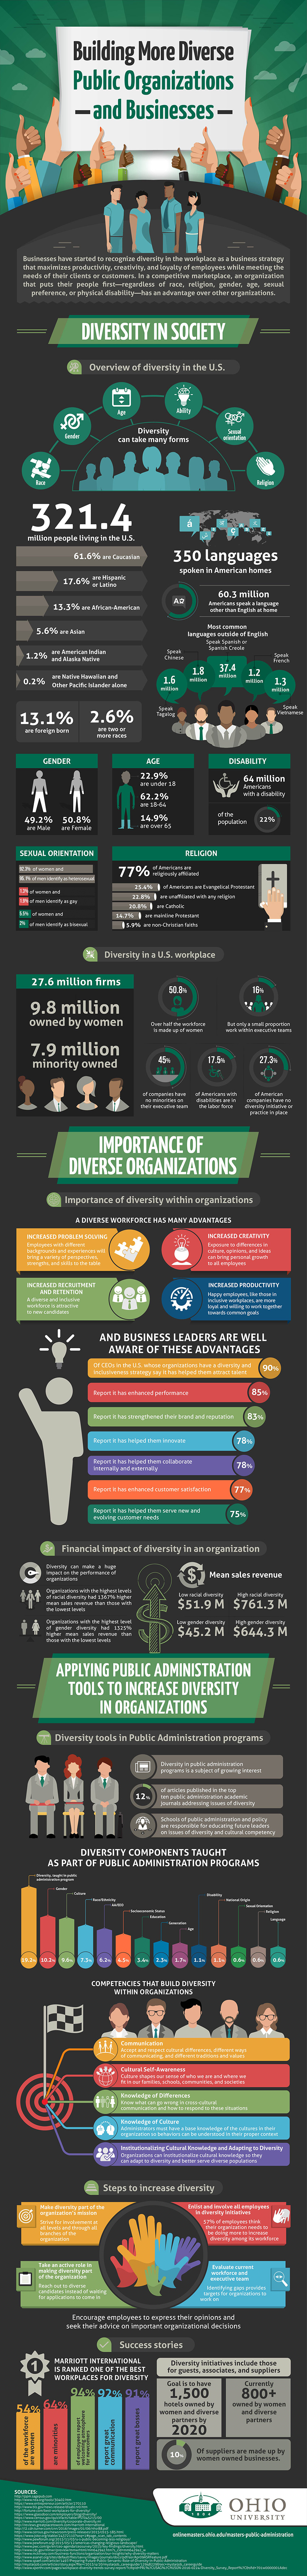 Building More Diverse Public Organizations and Businesses [Infographic]